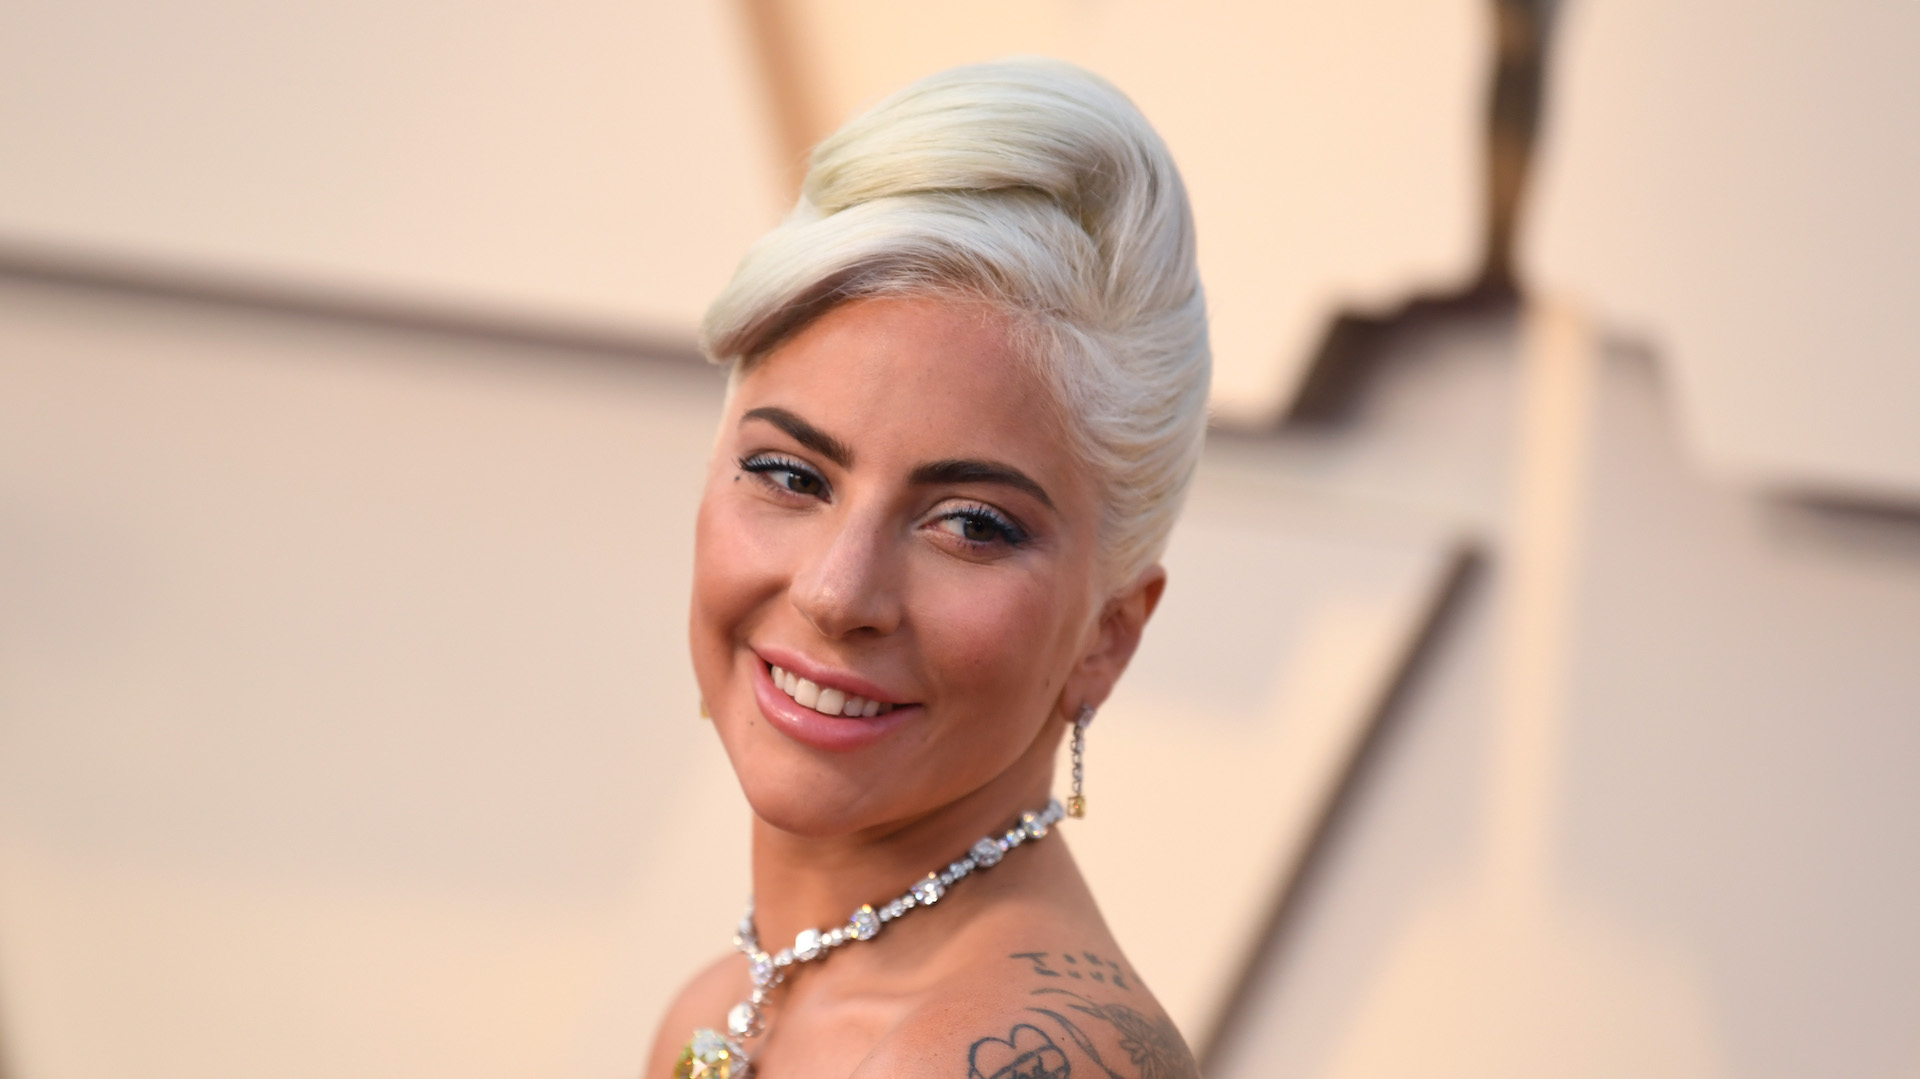 Lady Gaga's Oscars Look Was Sheer Old Hollywood Glamour—with a Twist